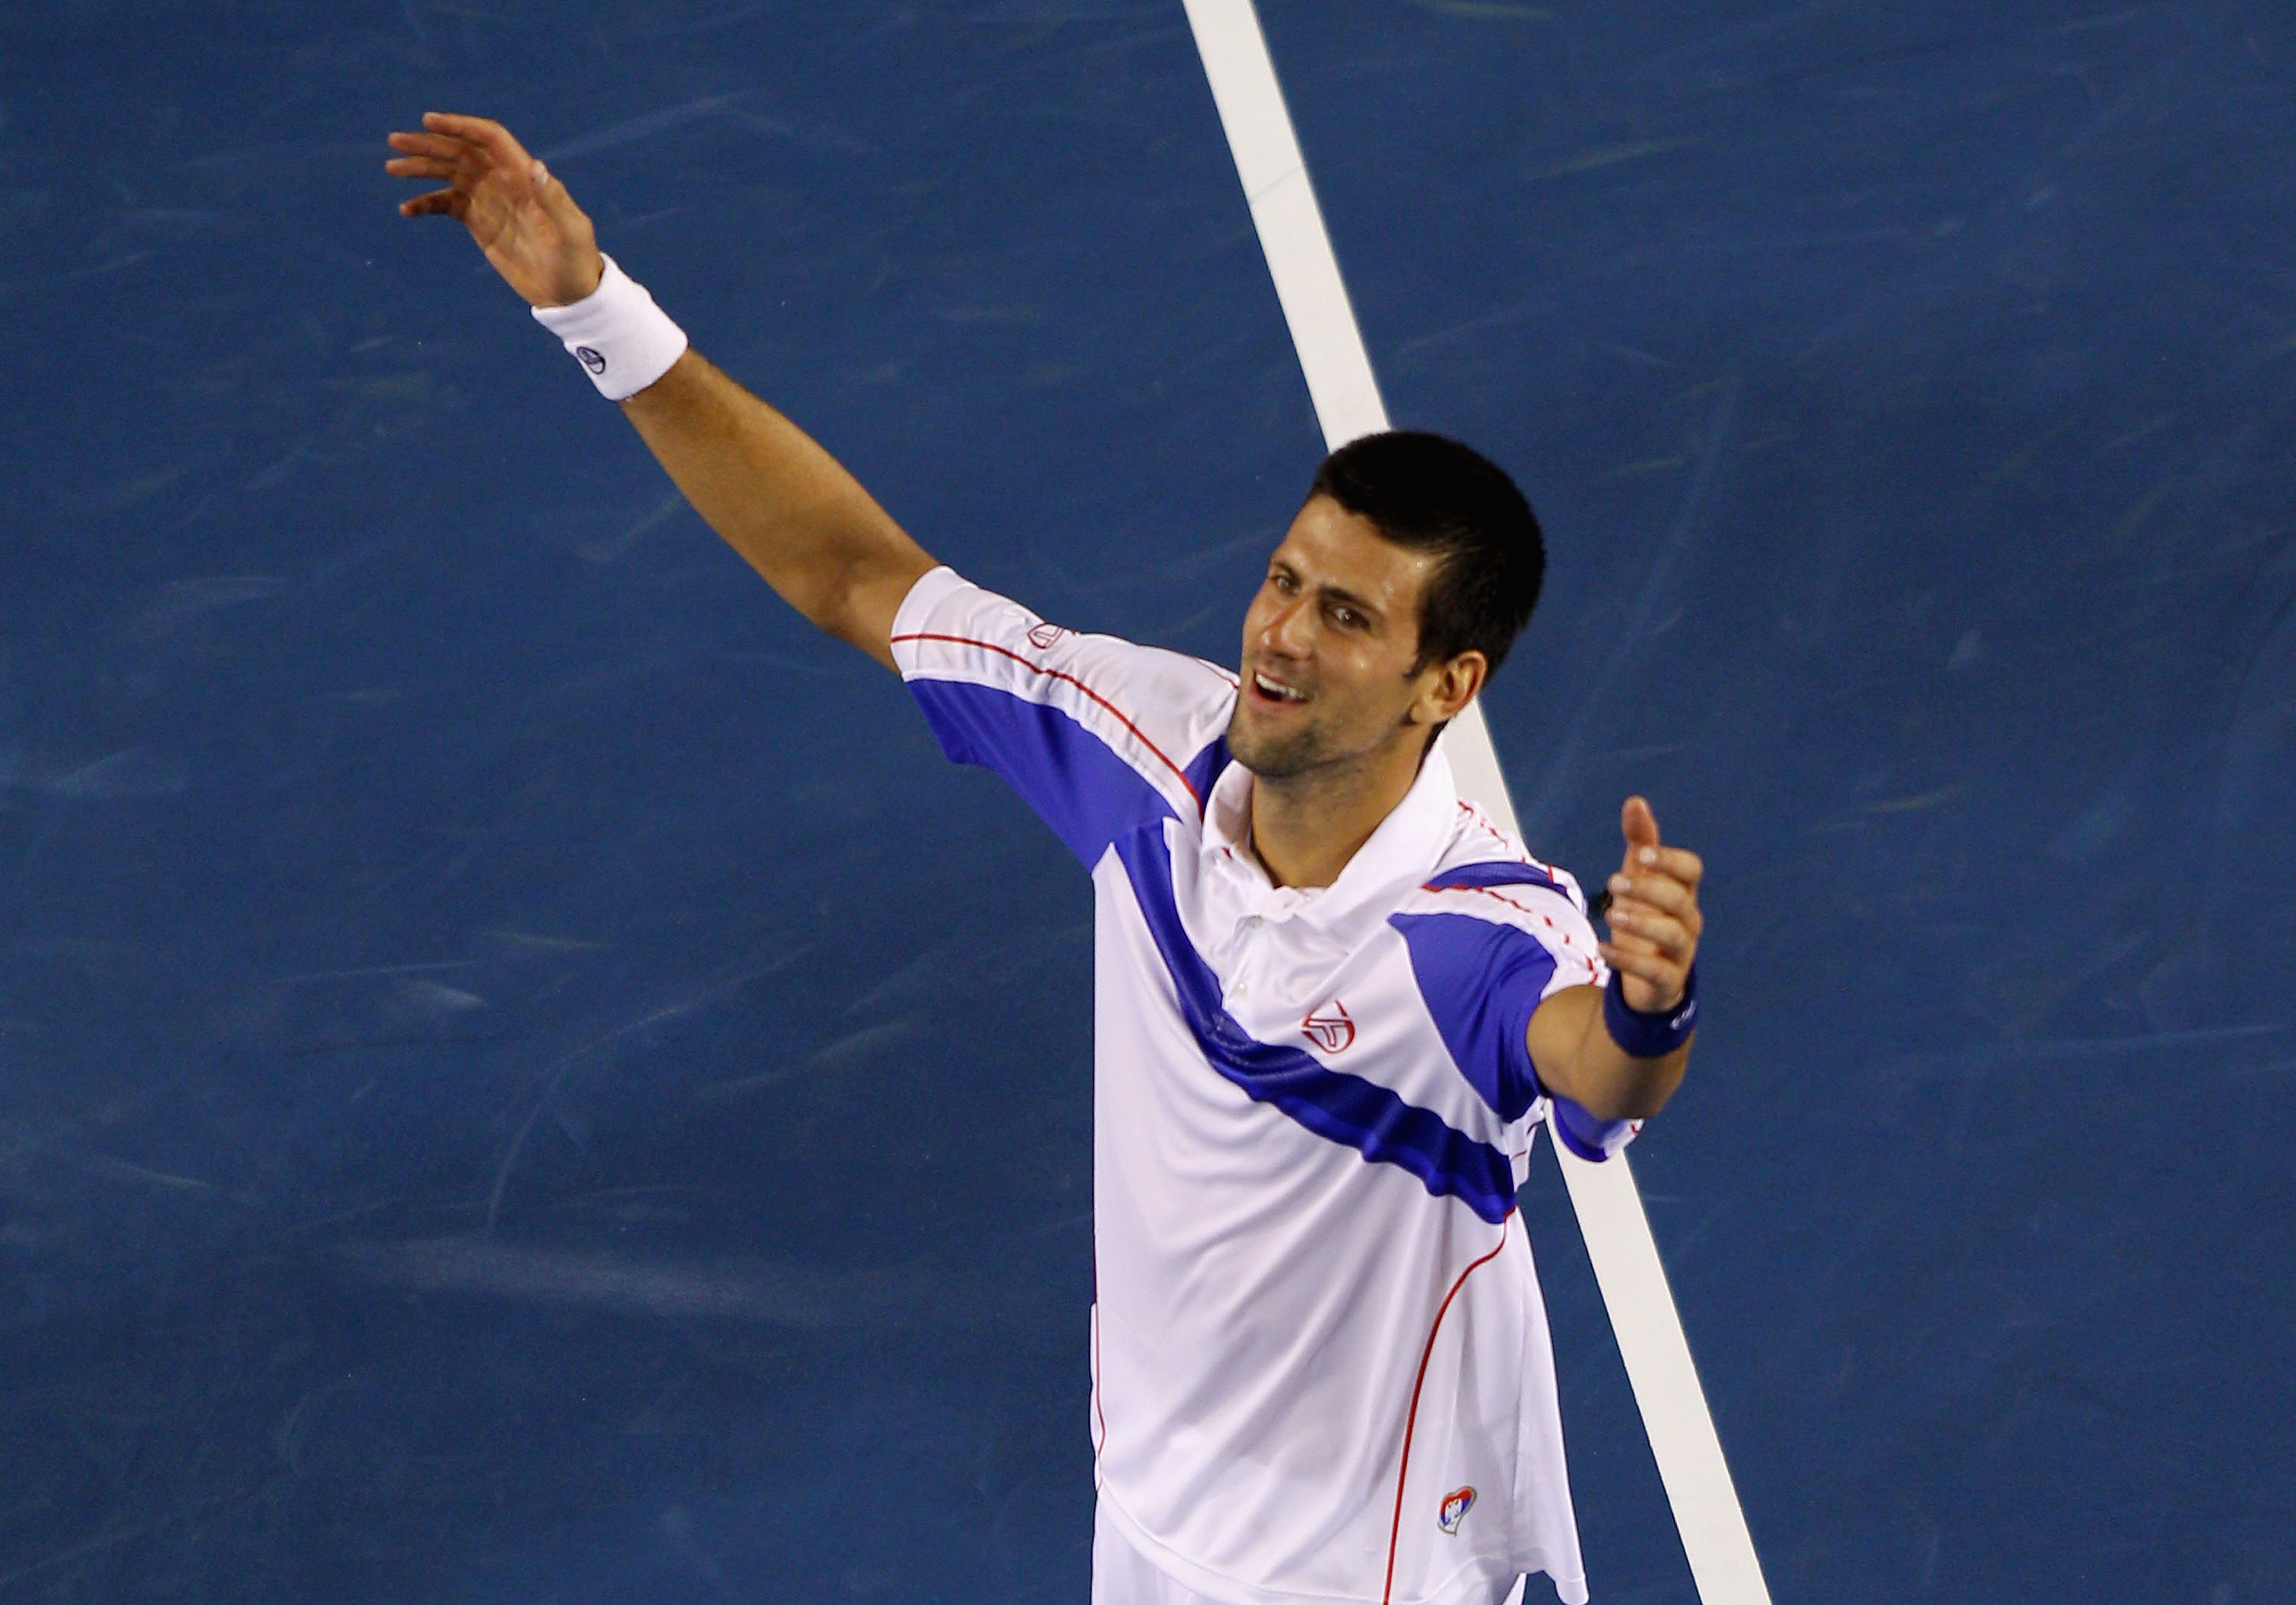 MELBOURNE, AUSTRALIA - JANUARY 30:  Novak Djokovic of Serbia celebrates in his men's final match against Andy Murray of Great Britain during day fourteen of the 2011 Australian Open at Melbourne Park on January 30, 2011 in Melbourne, Australia.  (Photo by